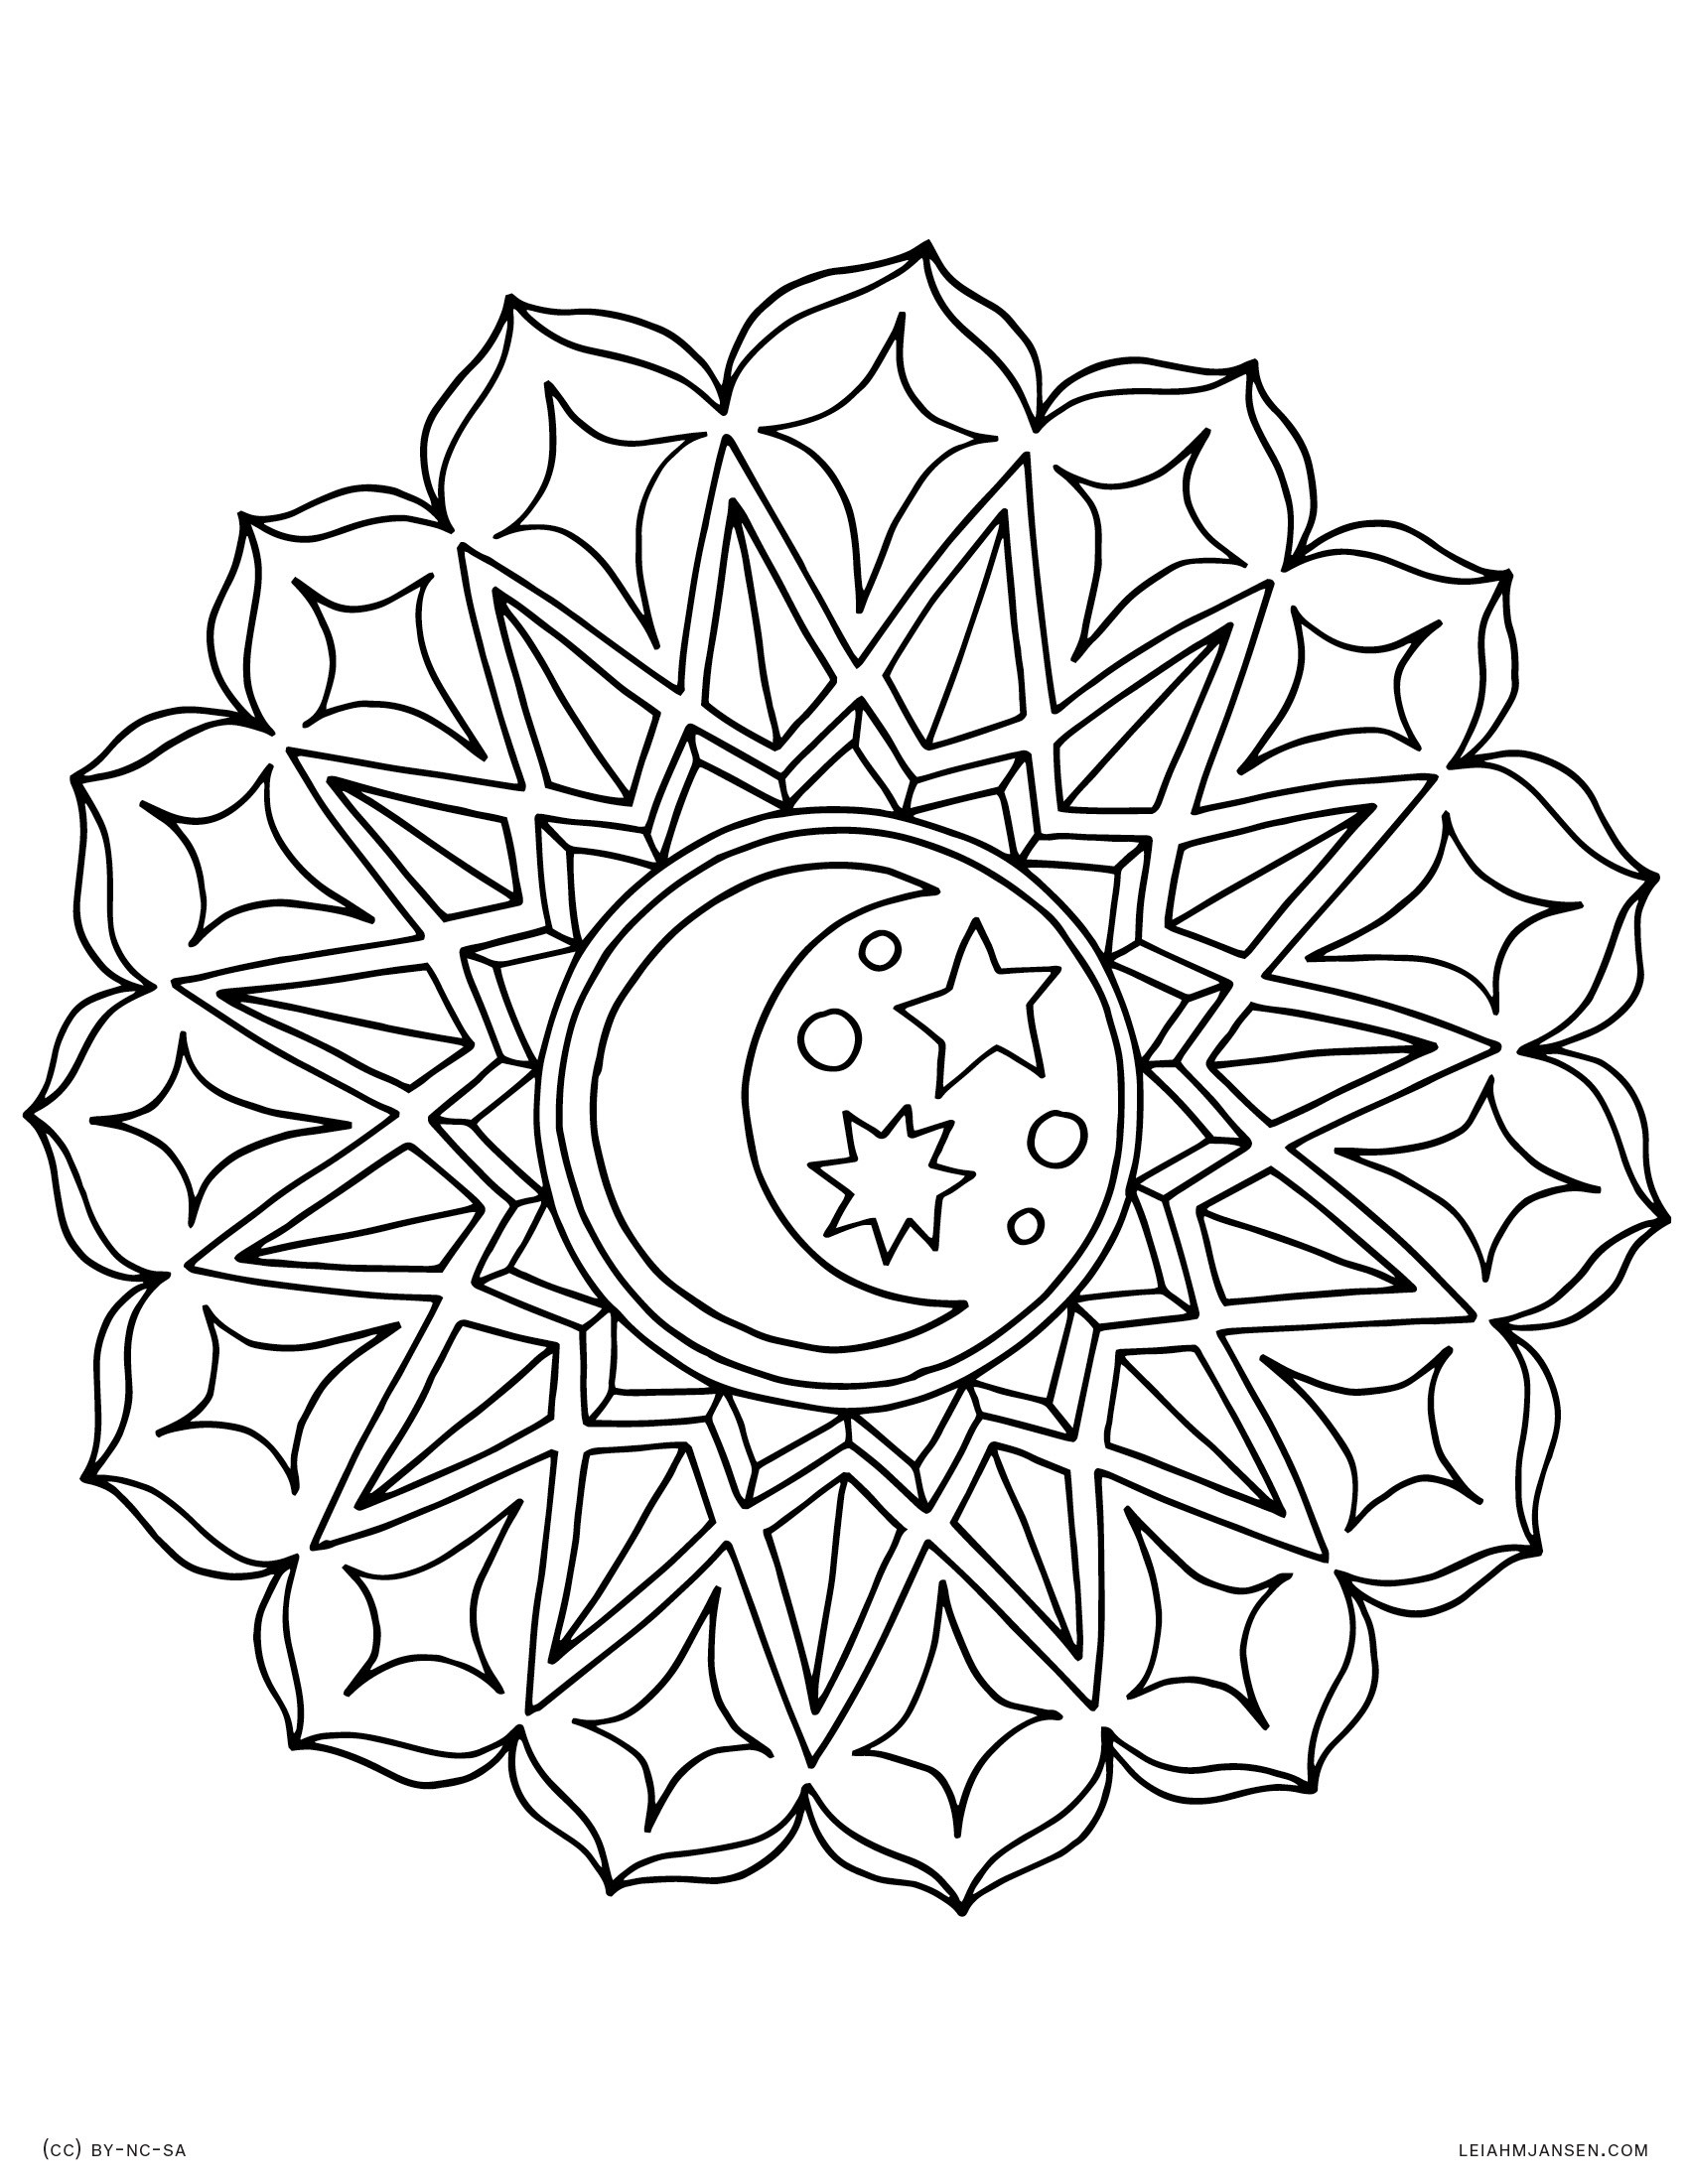 Star Mandala Coloring Pages At Getcolorings